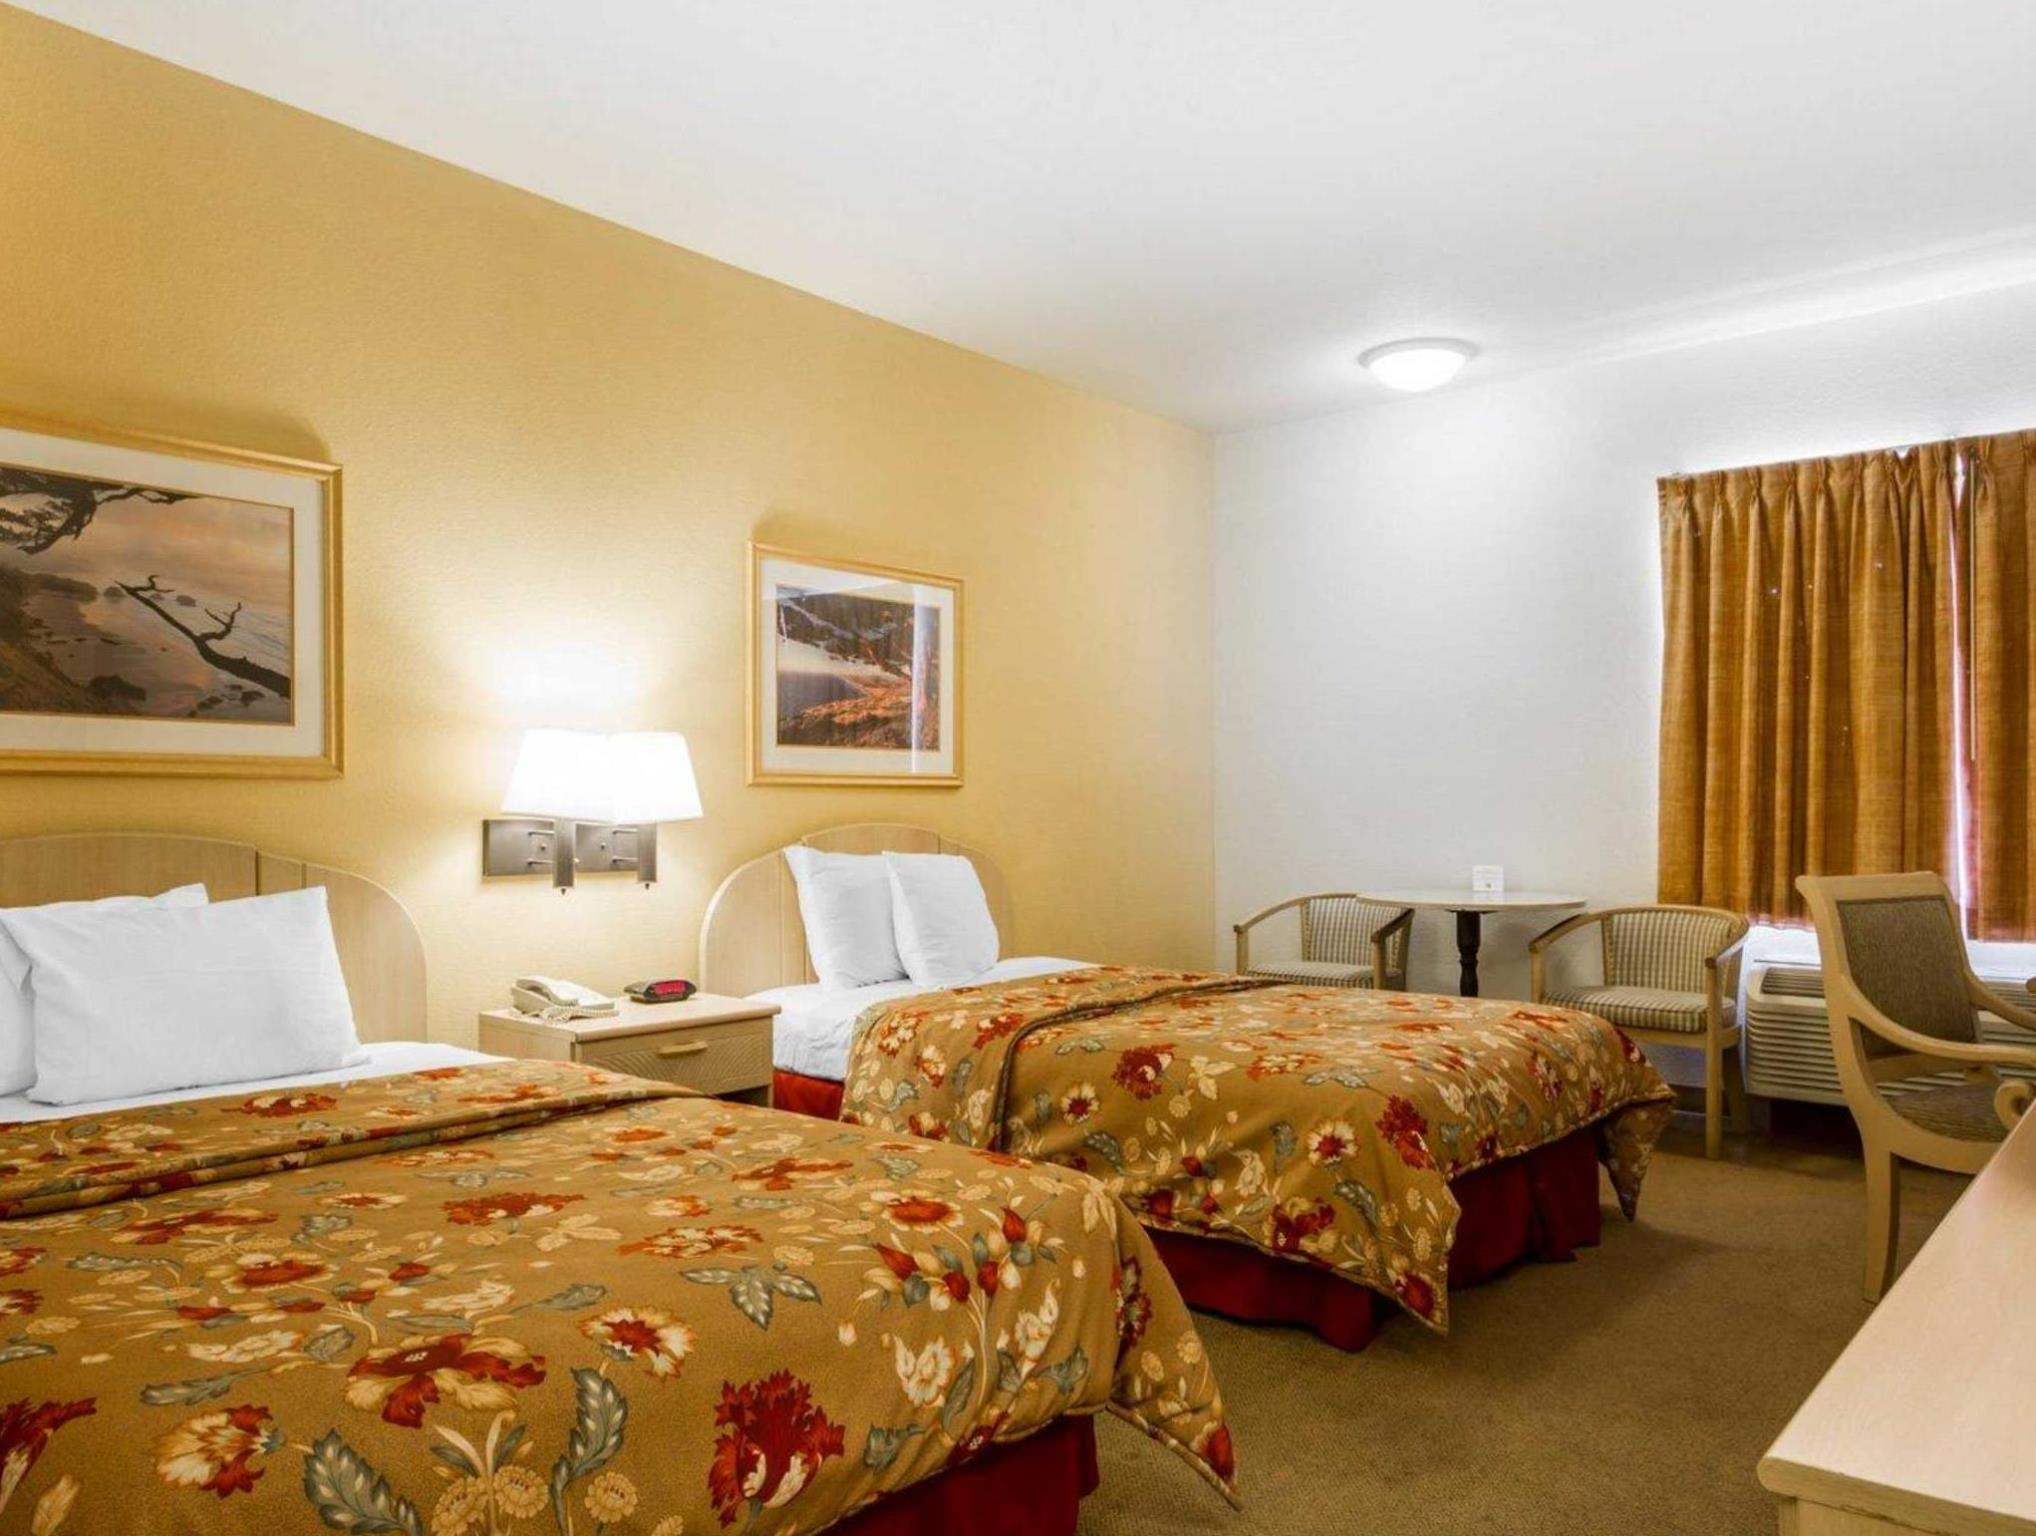 2 Queen Beds - No Smoking - Free Internet In Room - Free Breakfast - Free Parking - Fridge - Microwave